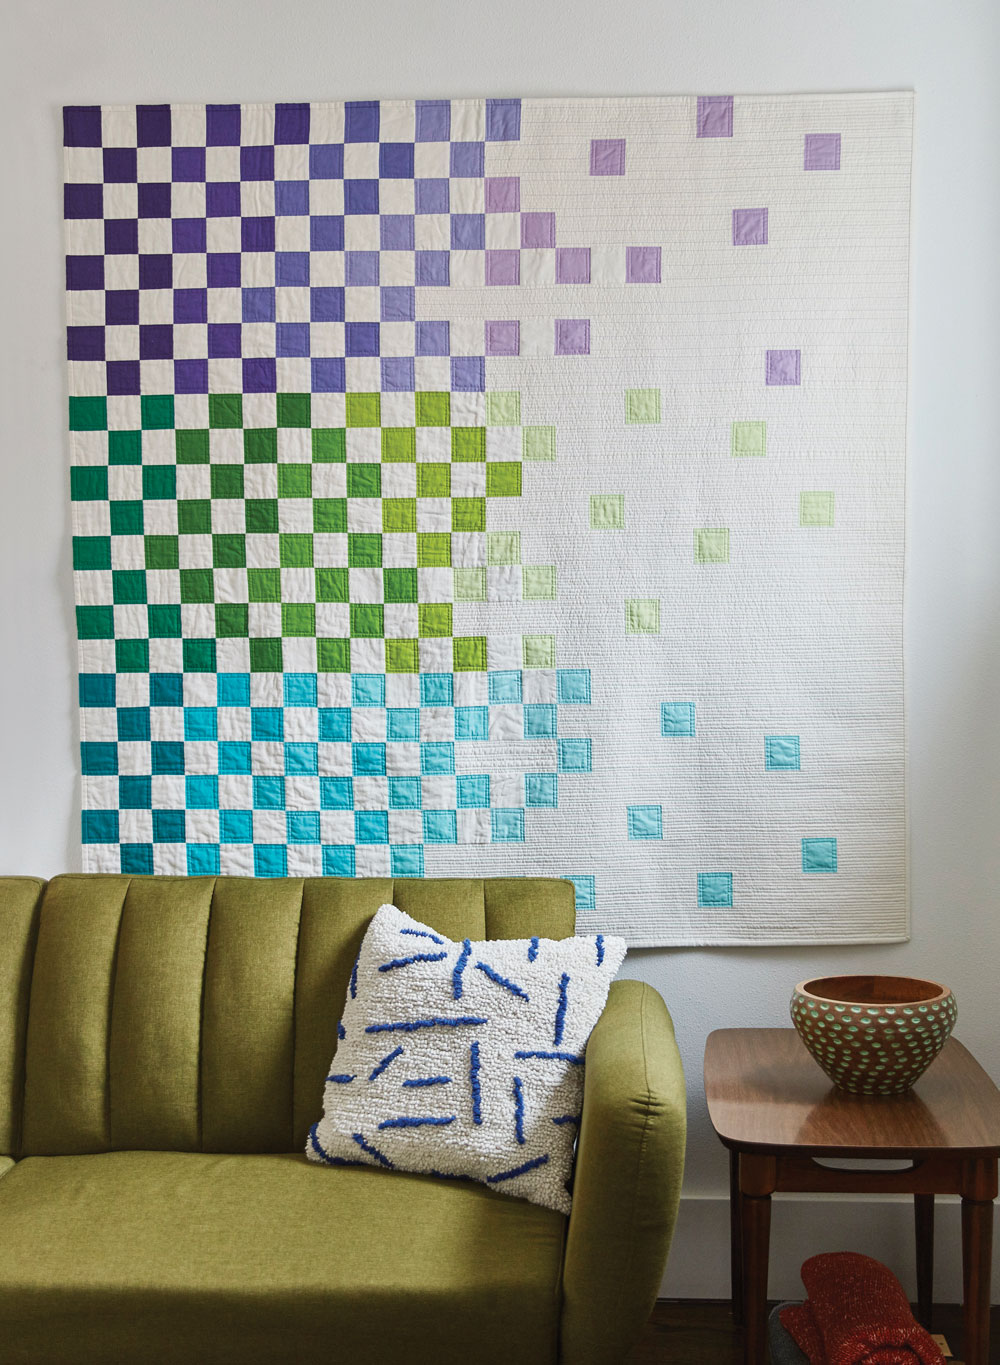 Racing Fade Quilt by Sheri Cifaldi-Morrill